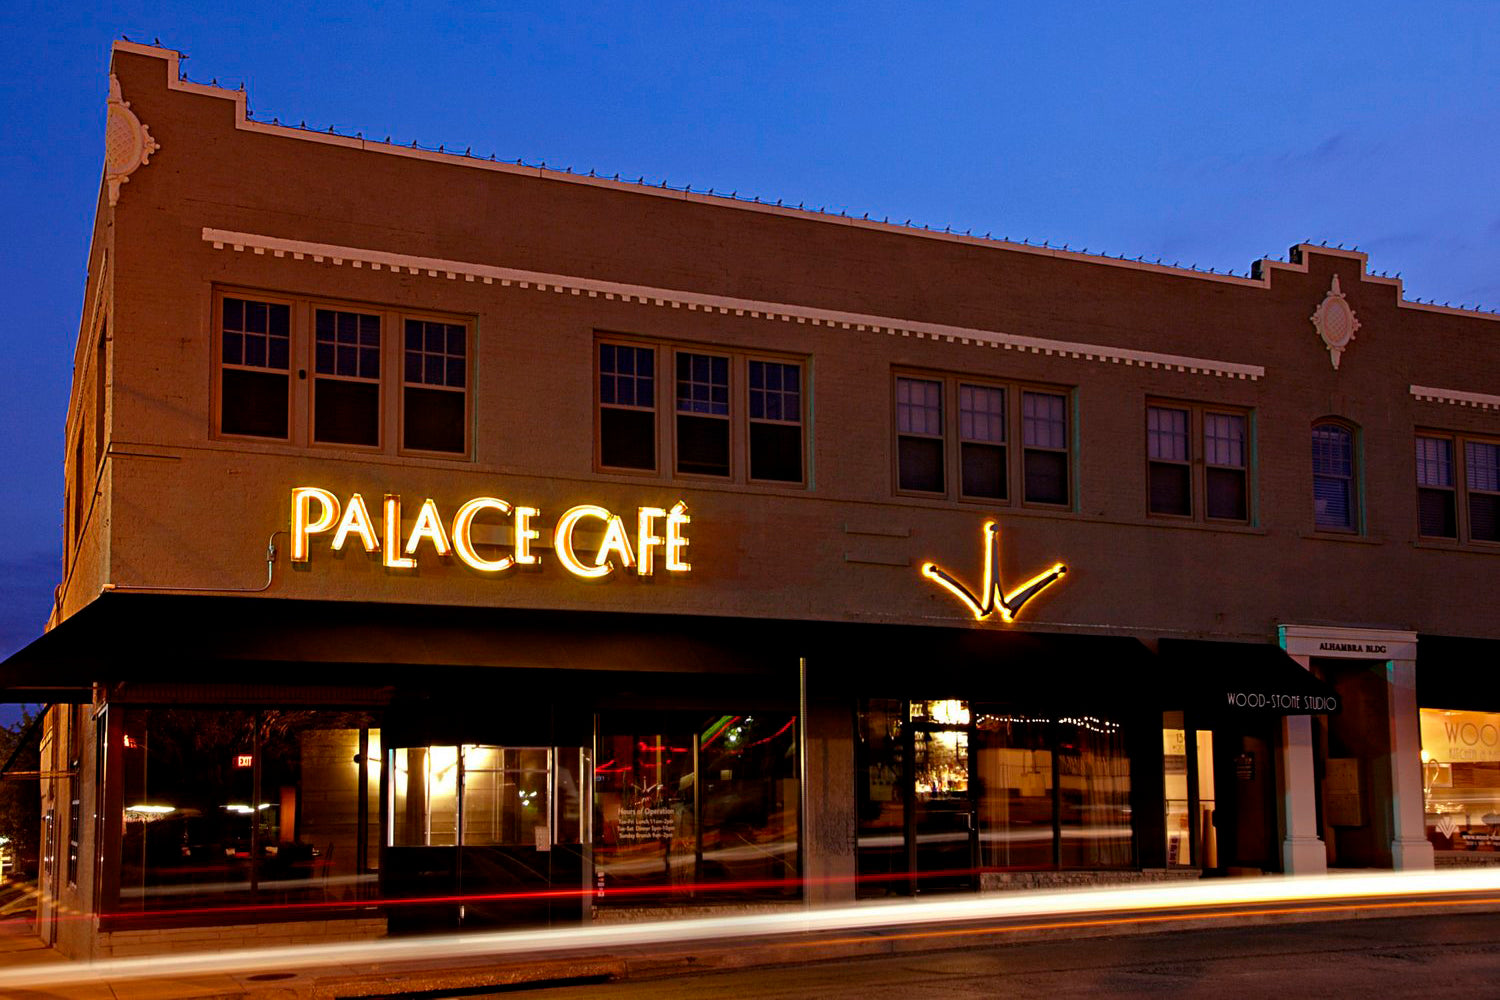 Duvall Architect & Atelier - Palace Cafe, Tulsa, OK